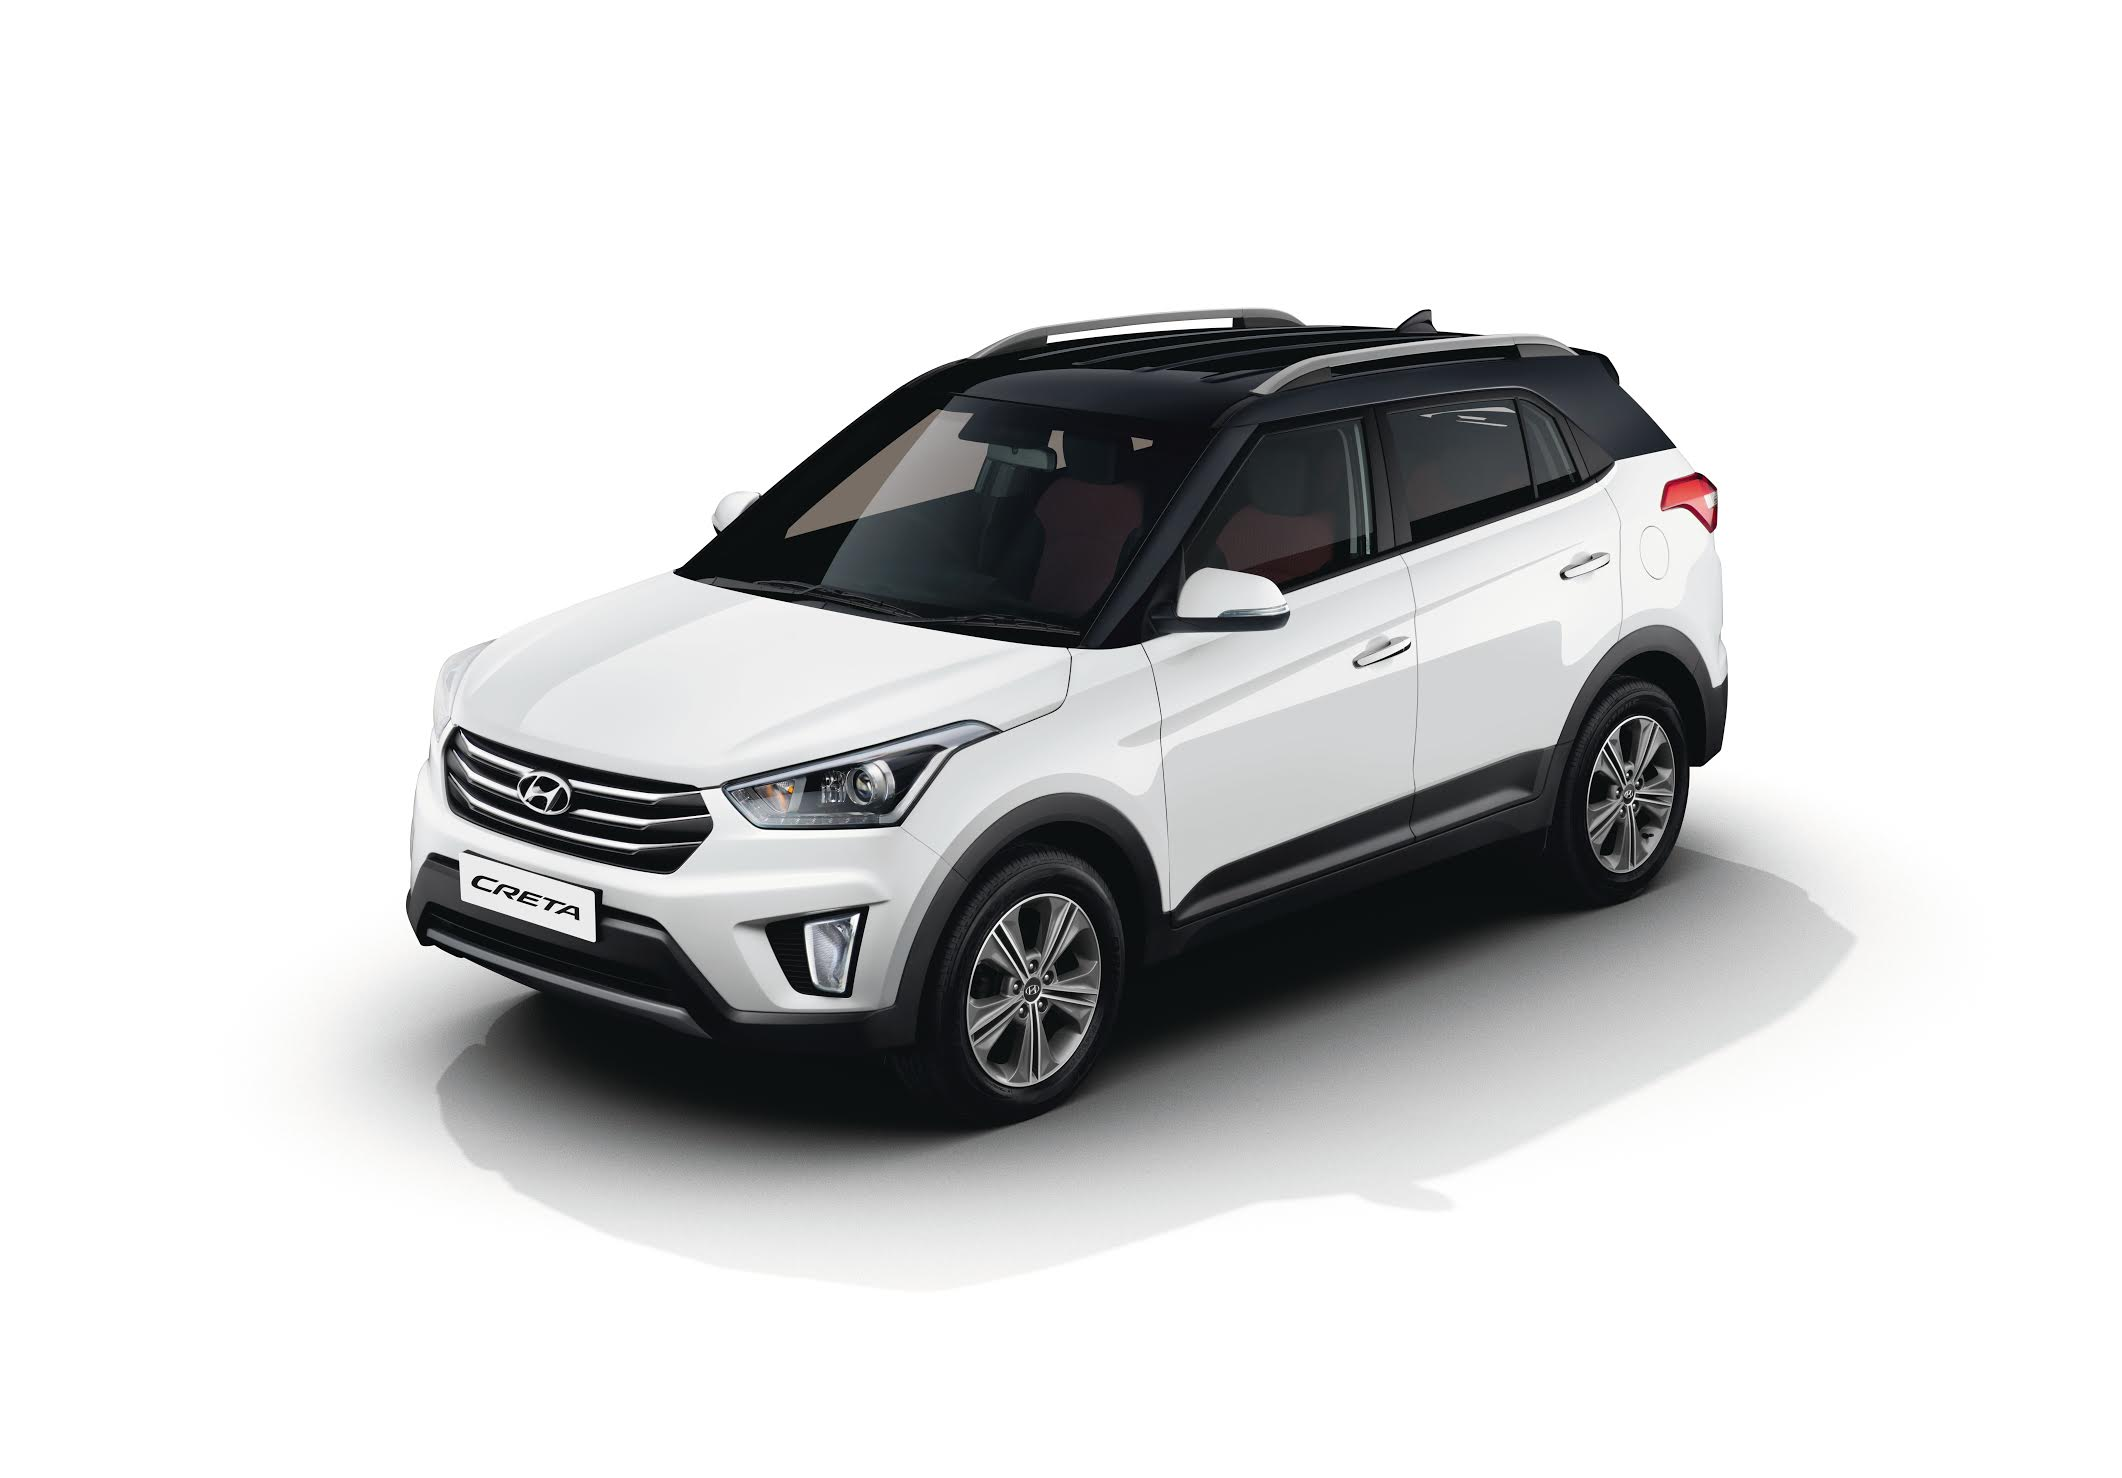 2017 Hyundai Creta with dual tone color option front three quarter press image